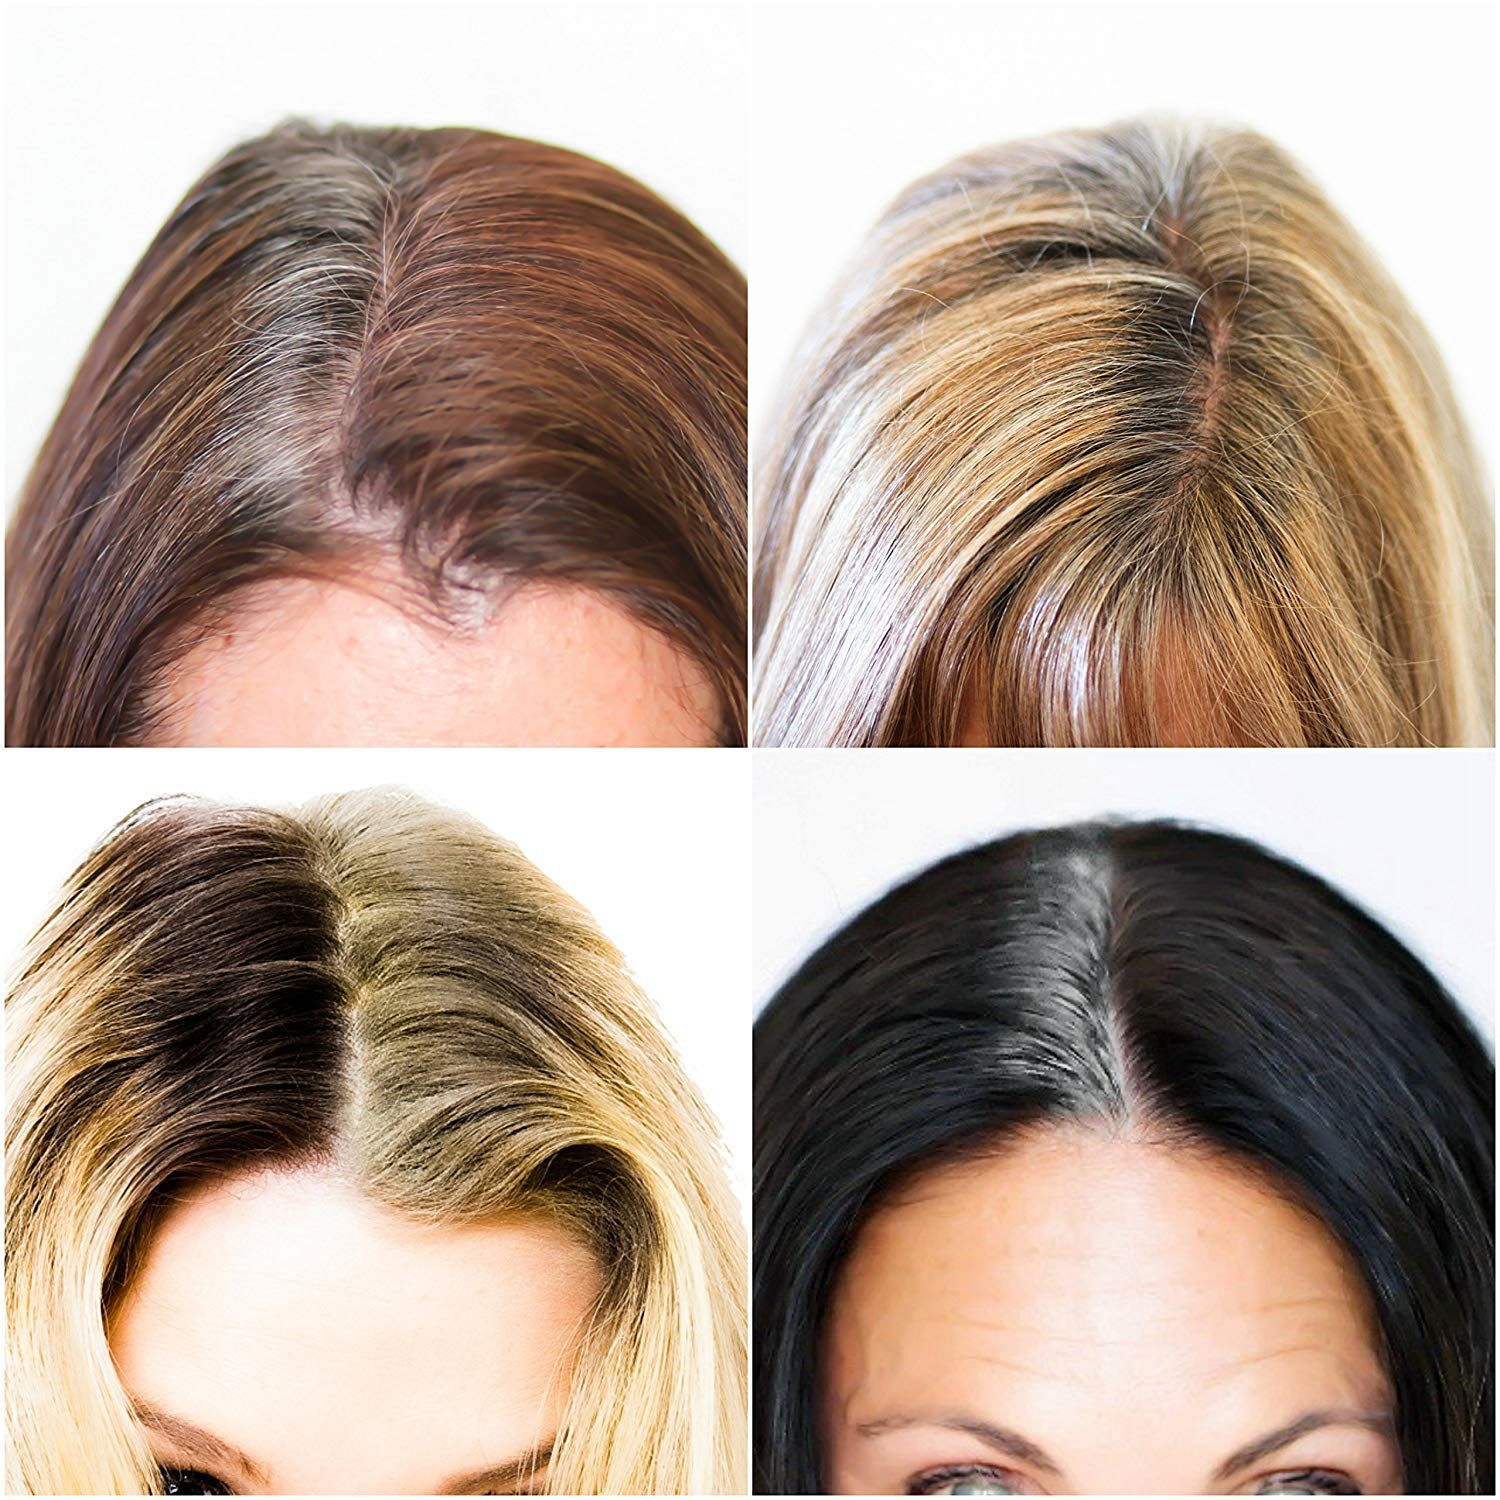 Root Touch Up Hair Powder Temporary Hair Color Root Concealer Thinning Hair Powder Dry Shampoo K Temporary Hair Color Hairstyles For Thin Hair Hair Color